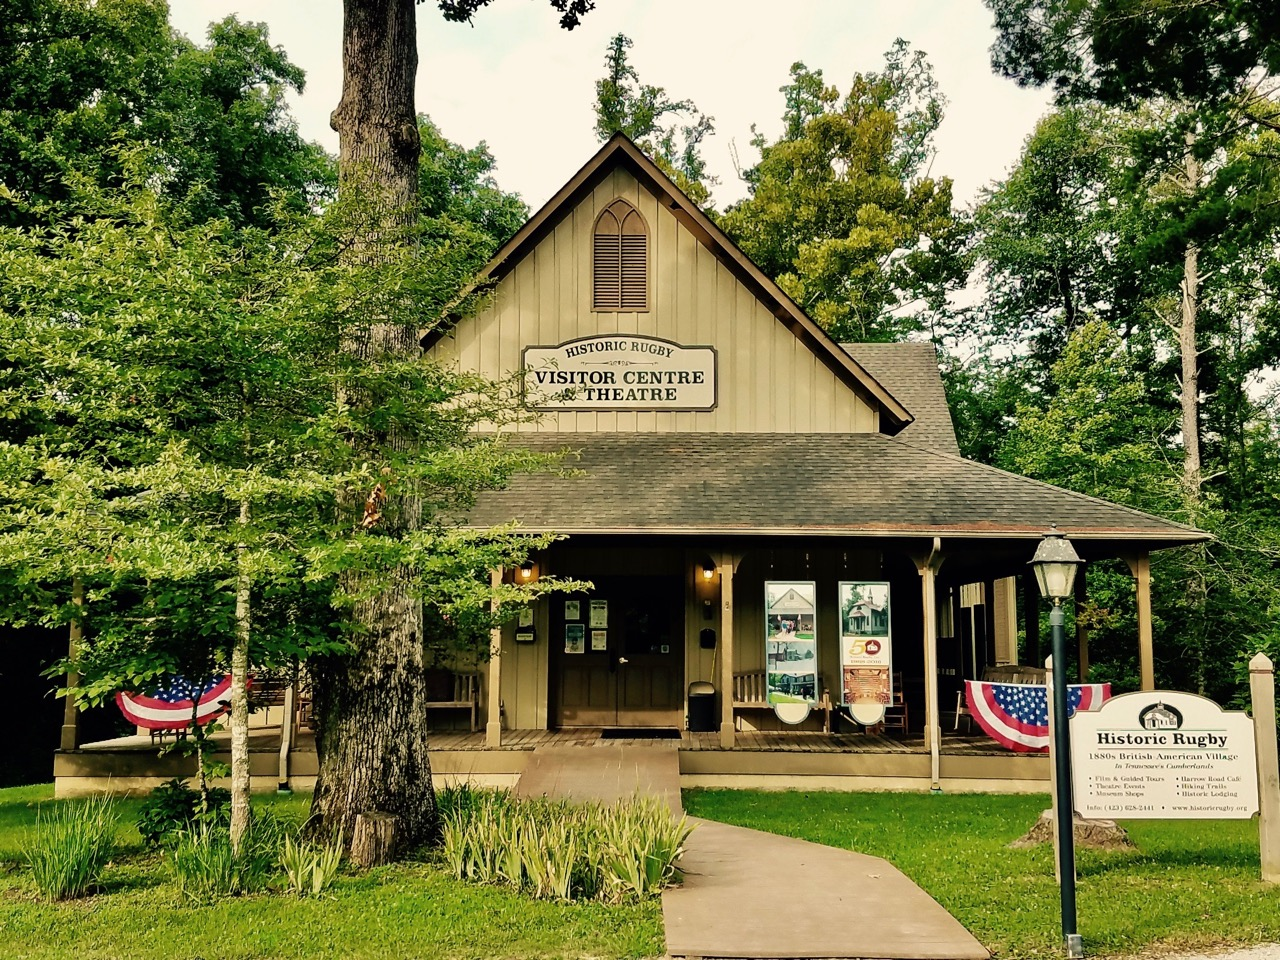 Historic Rugby & Big South Fork National River & Recreation Area